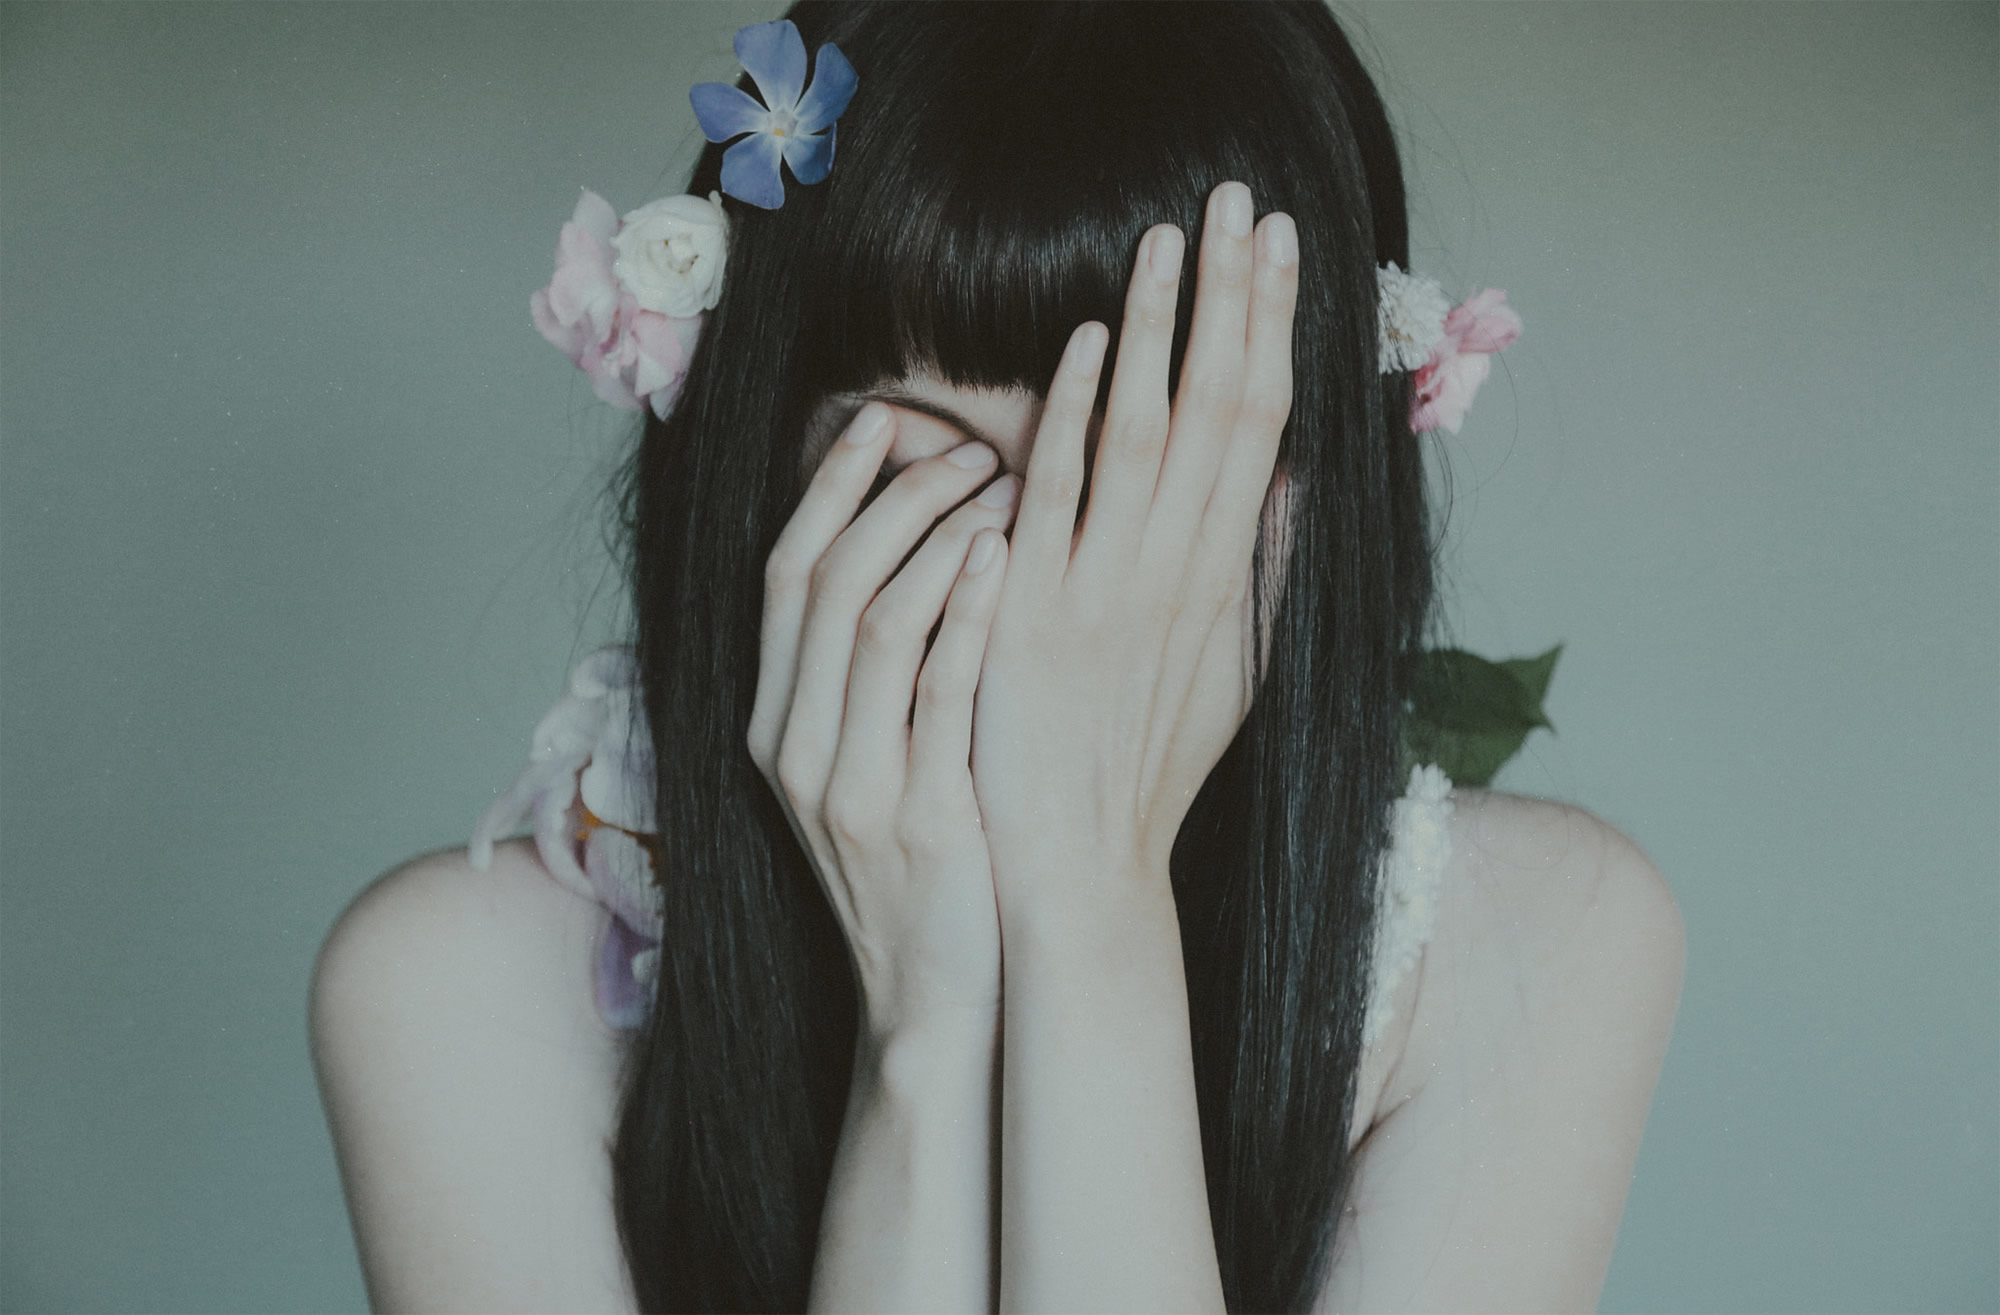 Don't Shy Away From Love: The Poetic Photographs of Anna O.